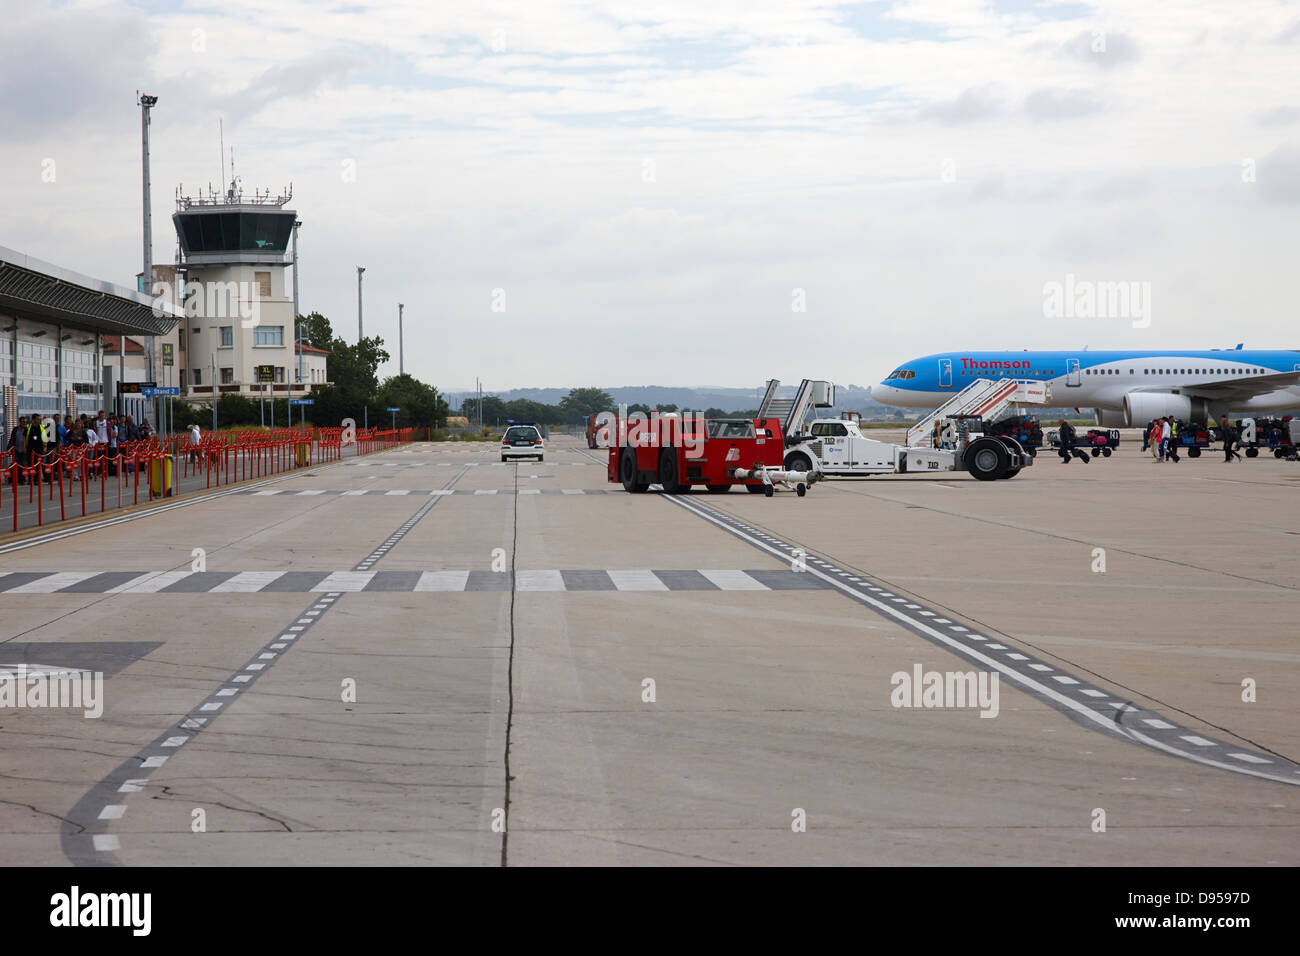 aircraft waiting on stands at reus airport catalonia spain - Stock Image